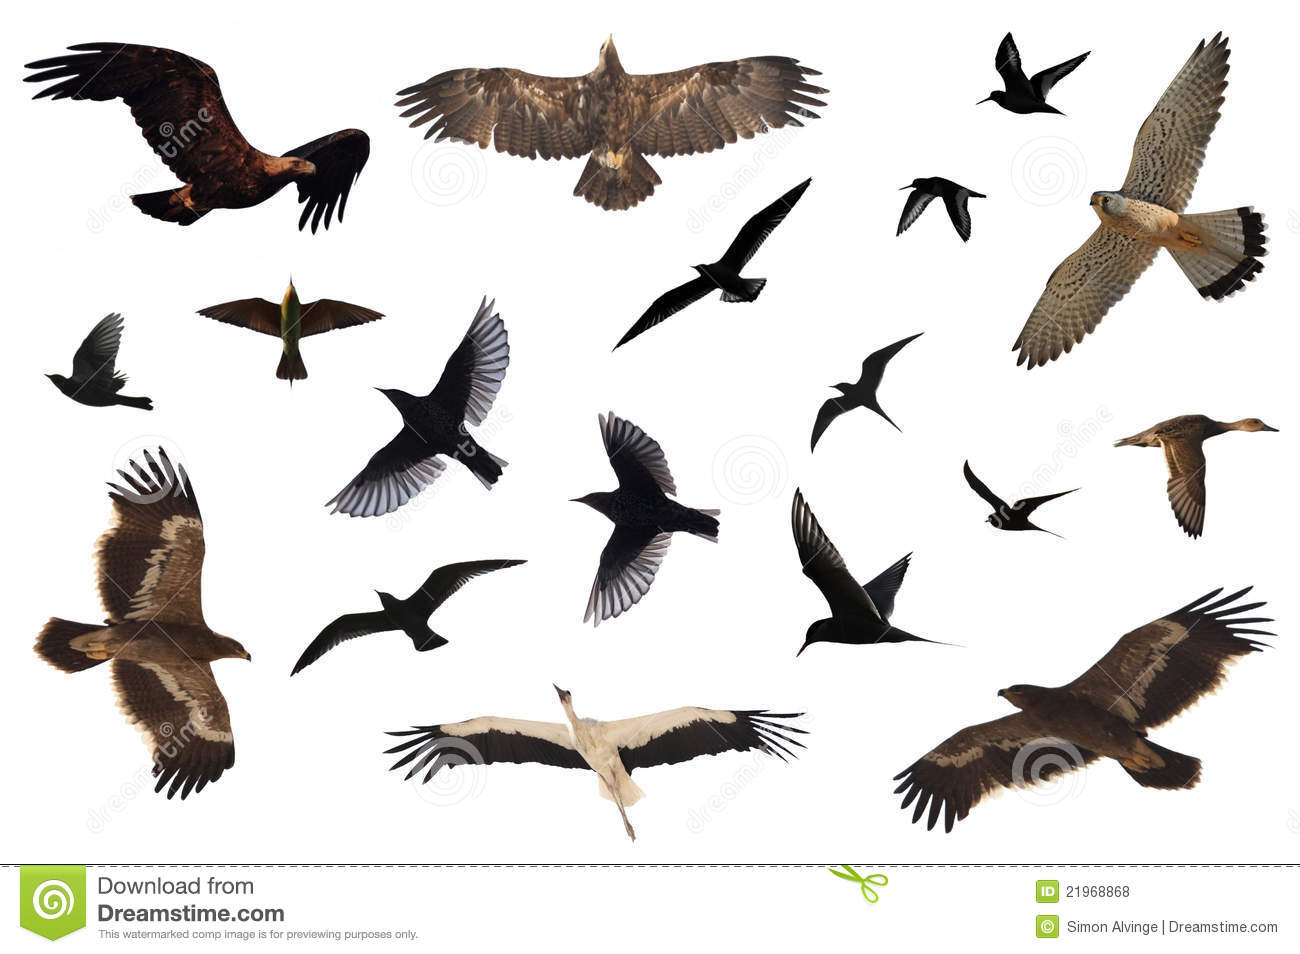 Flying Birds Free Stock Photos Download 3 416 Free Stock: Bird Collection Royalty Free Stock Photos